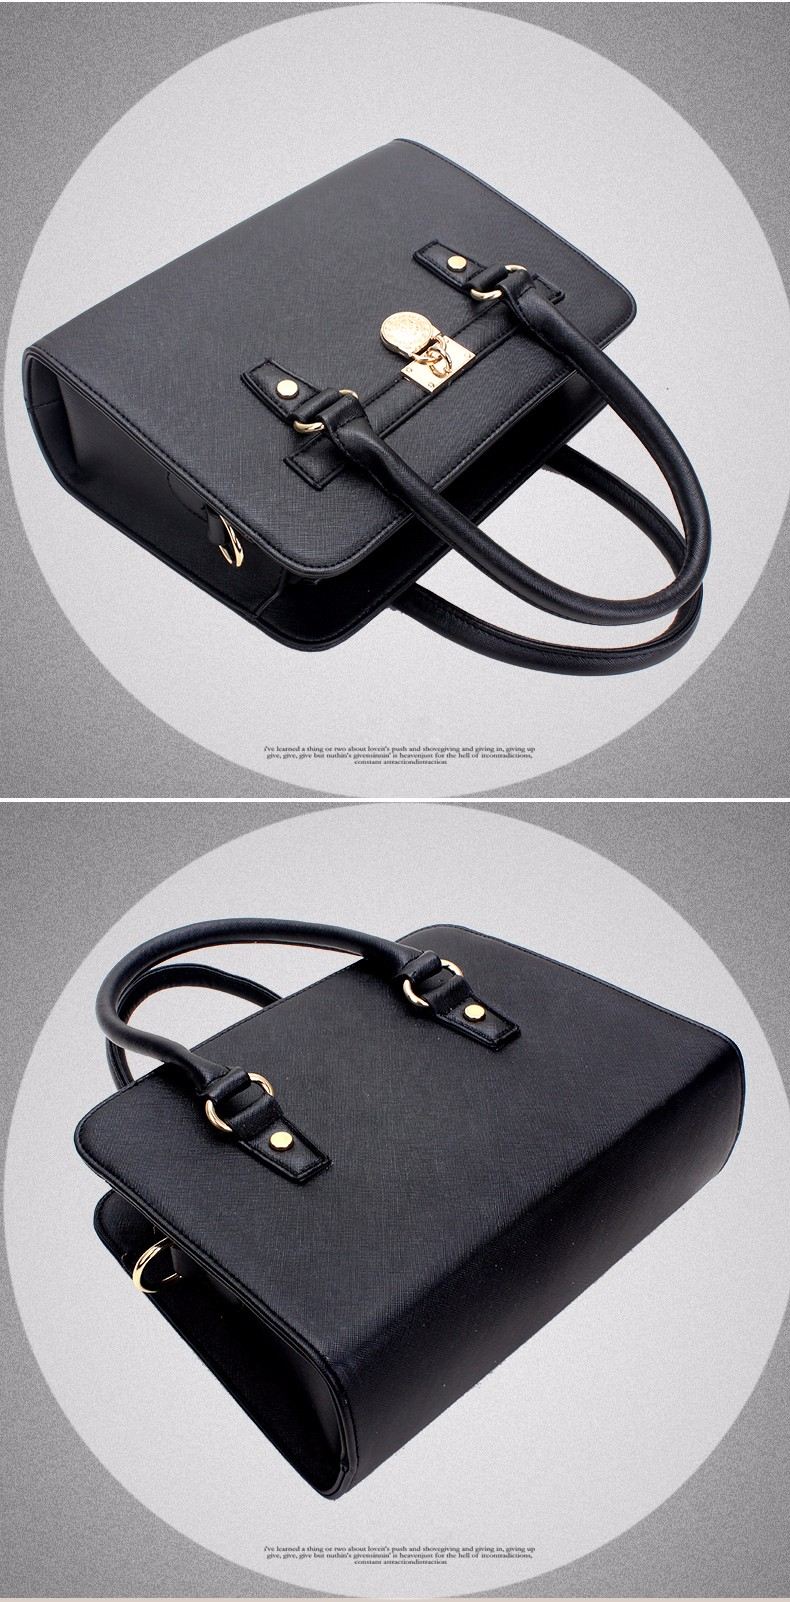 Trendy Elegant Women New Fashion Handbag Lock Ornament Luxury Embossing Bag High Quality PU Leather Shoulder Bag Crossbody